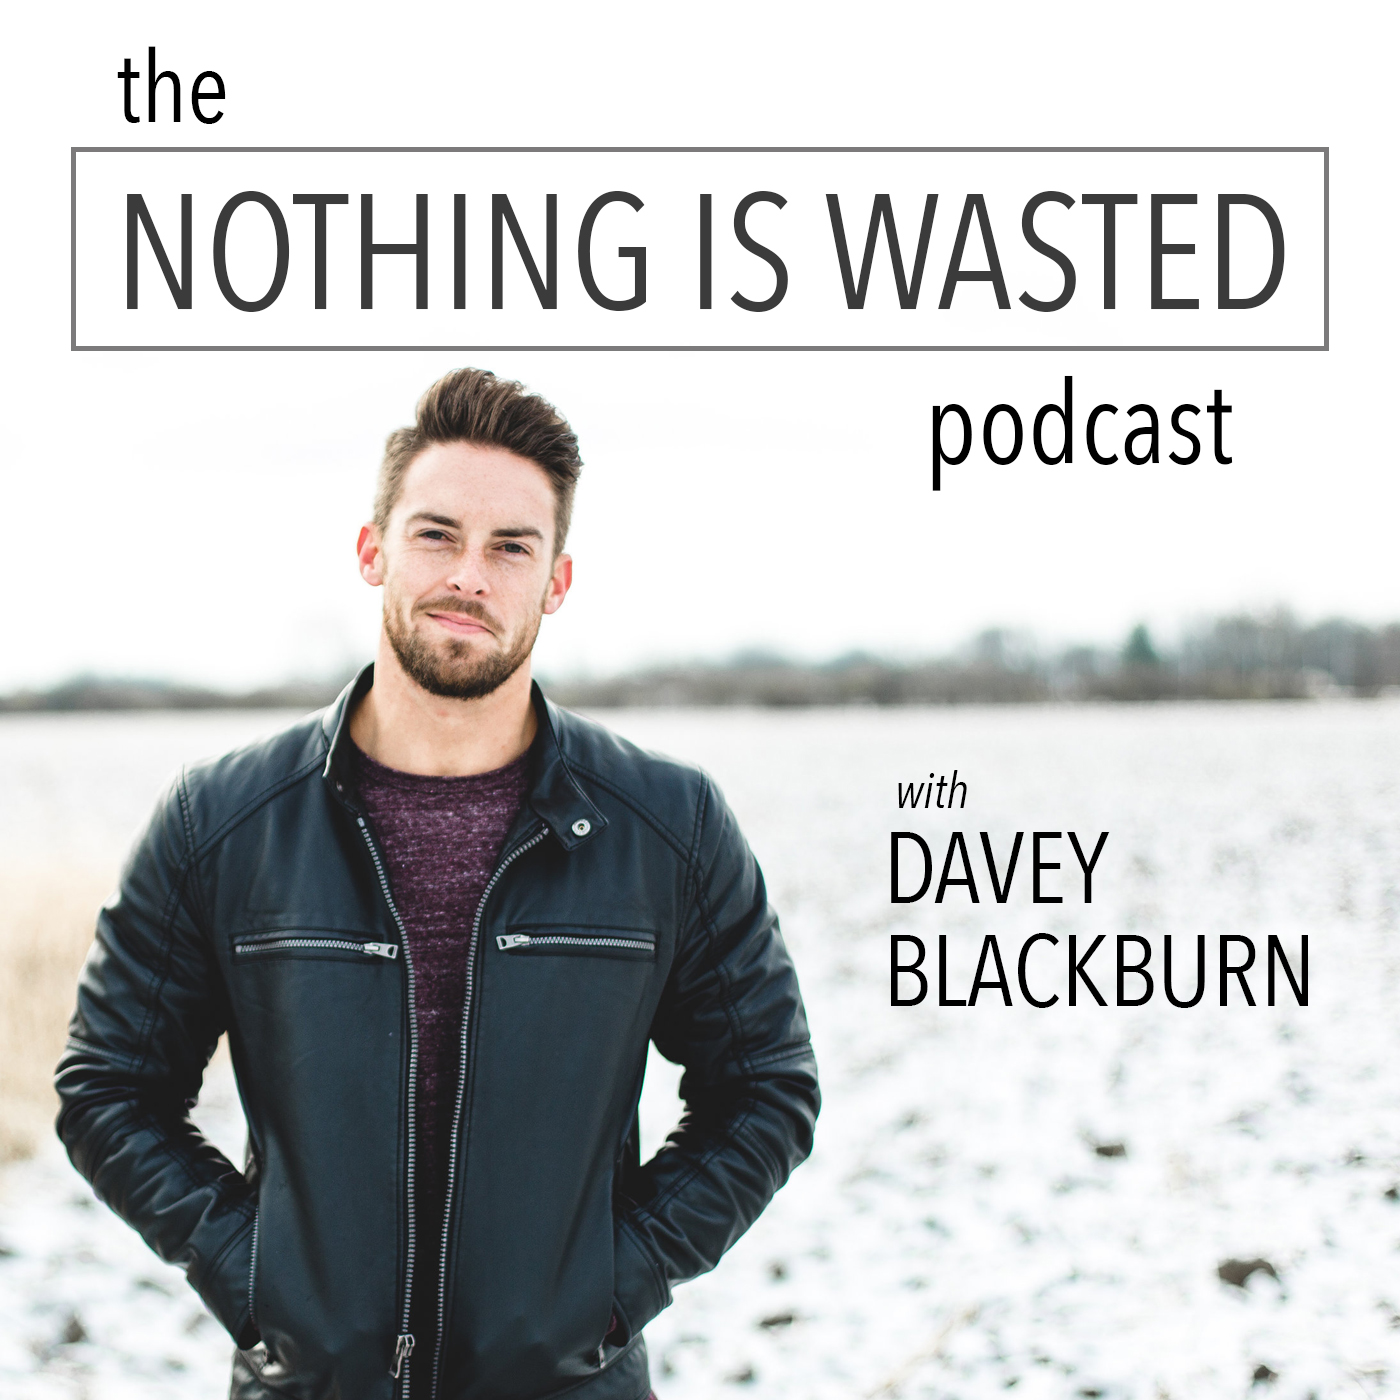 The Nothing Is Wasted Podcast